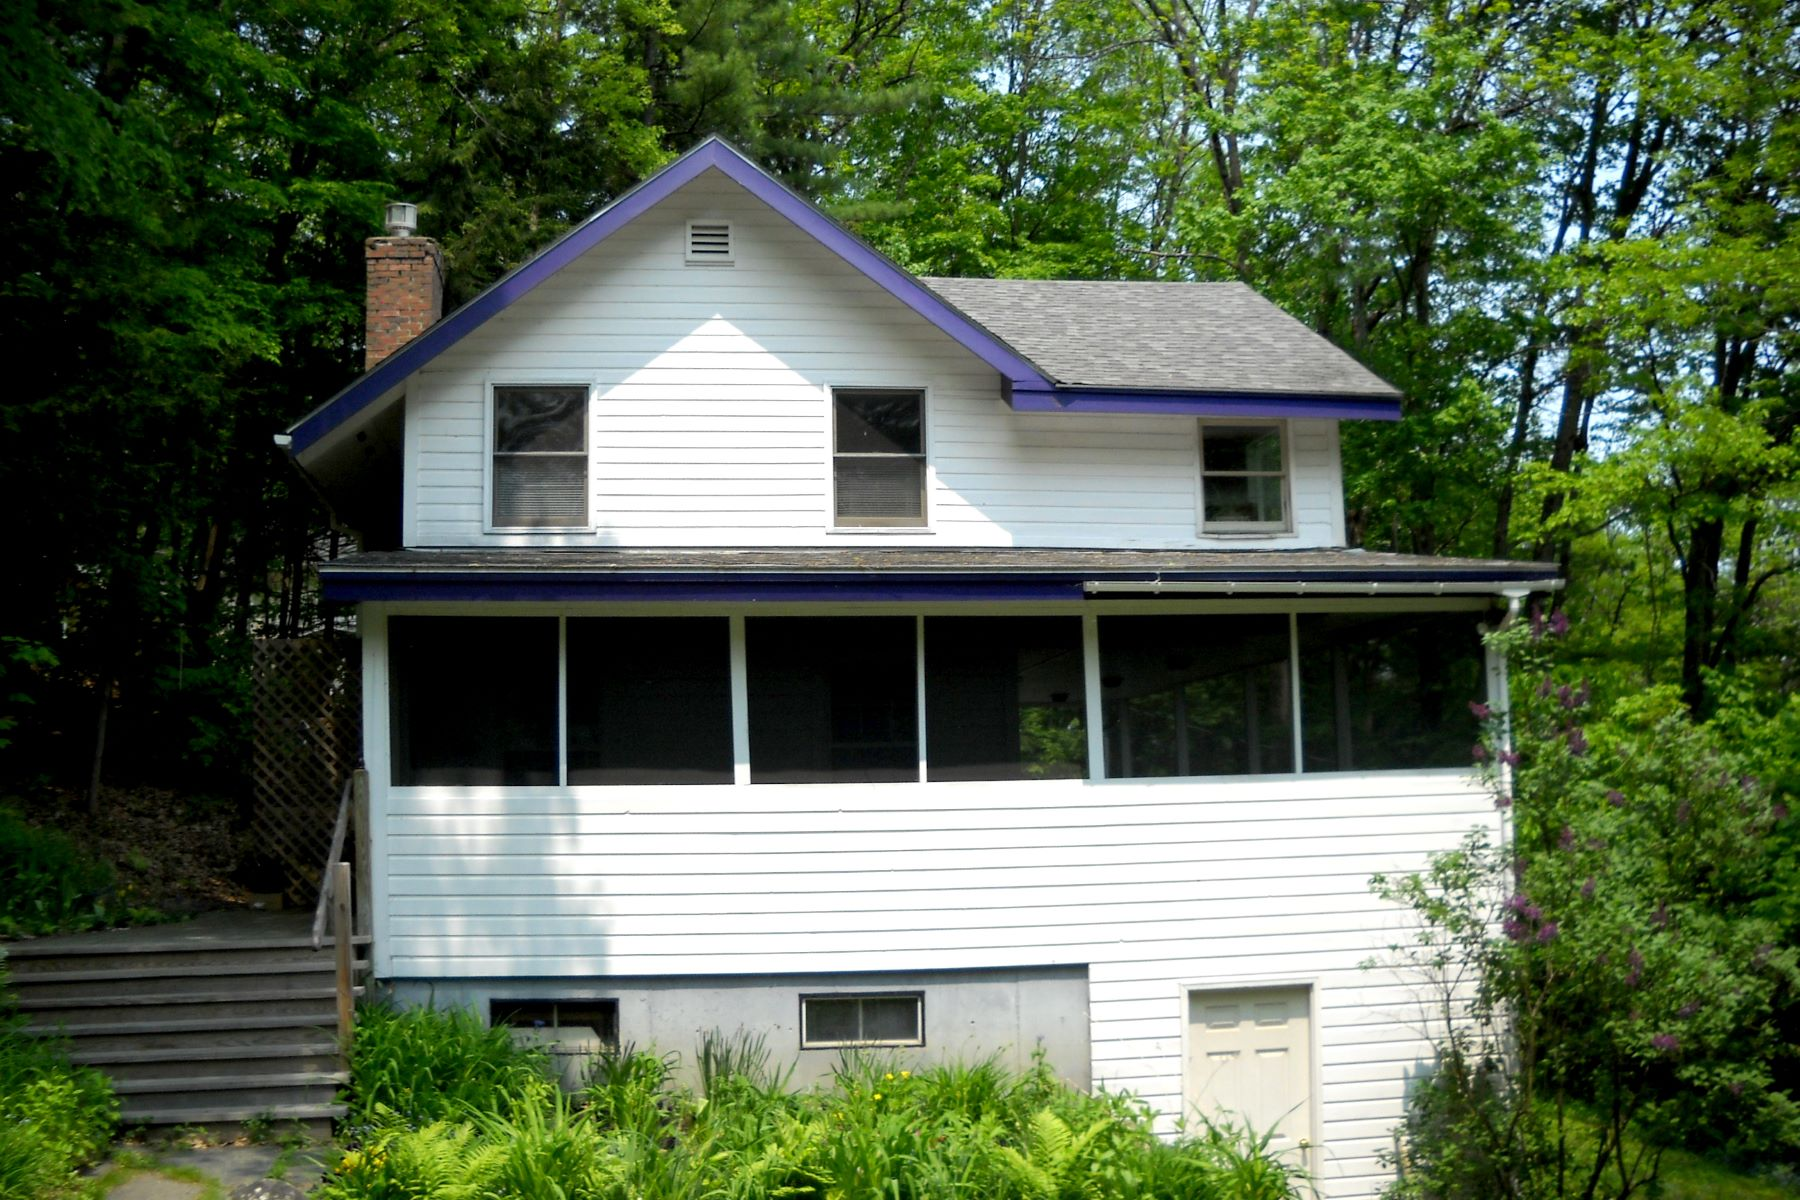 single family homes for Sale at Two Bedroom Multi-level Home in Fairlee 98 Bald Top Rd Fairlee, Vermont 05045 United States